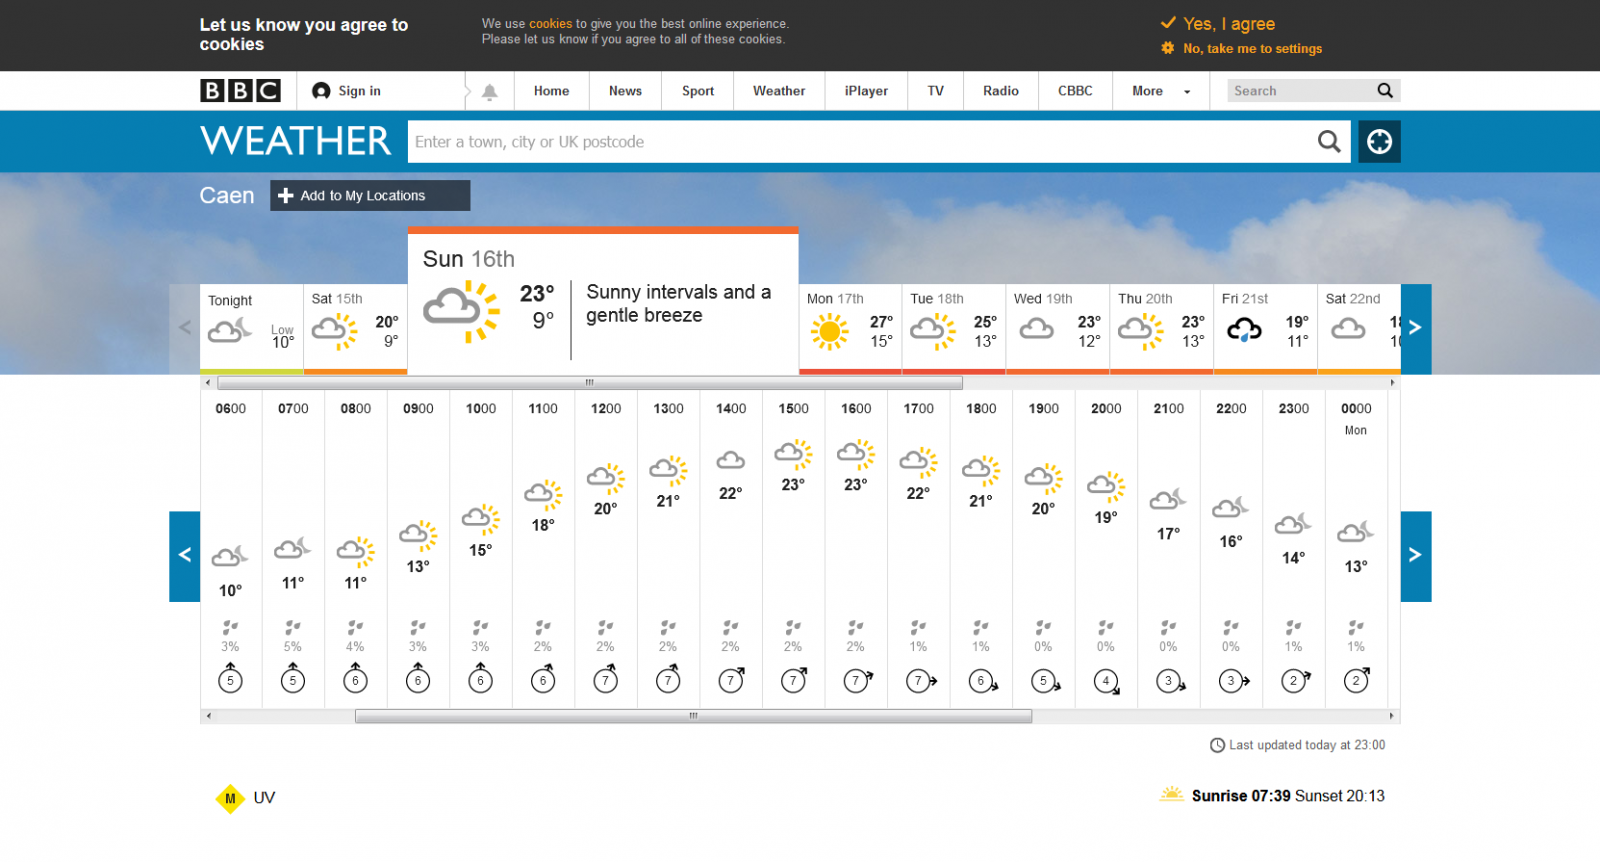 Screenshot_2018-09-14 Caen - BBC Weather.png